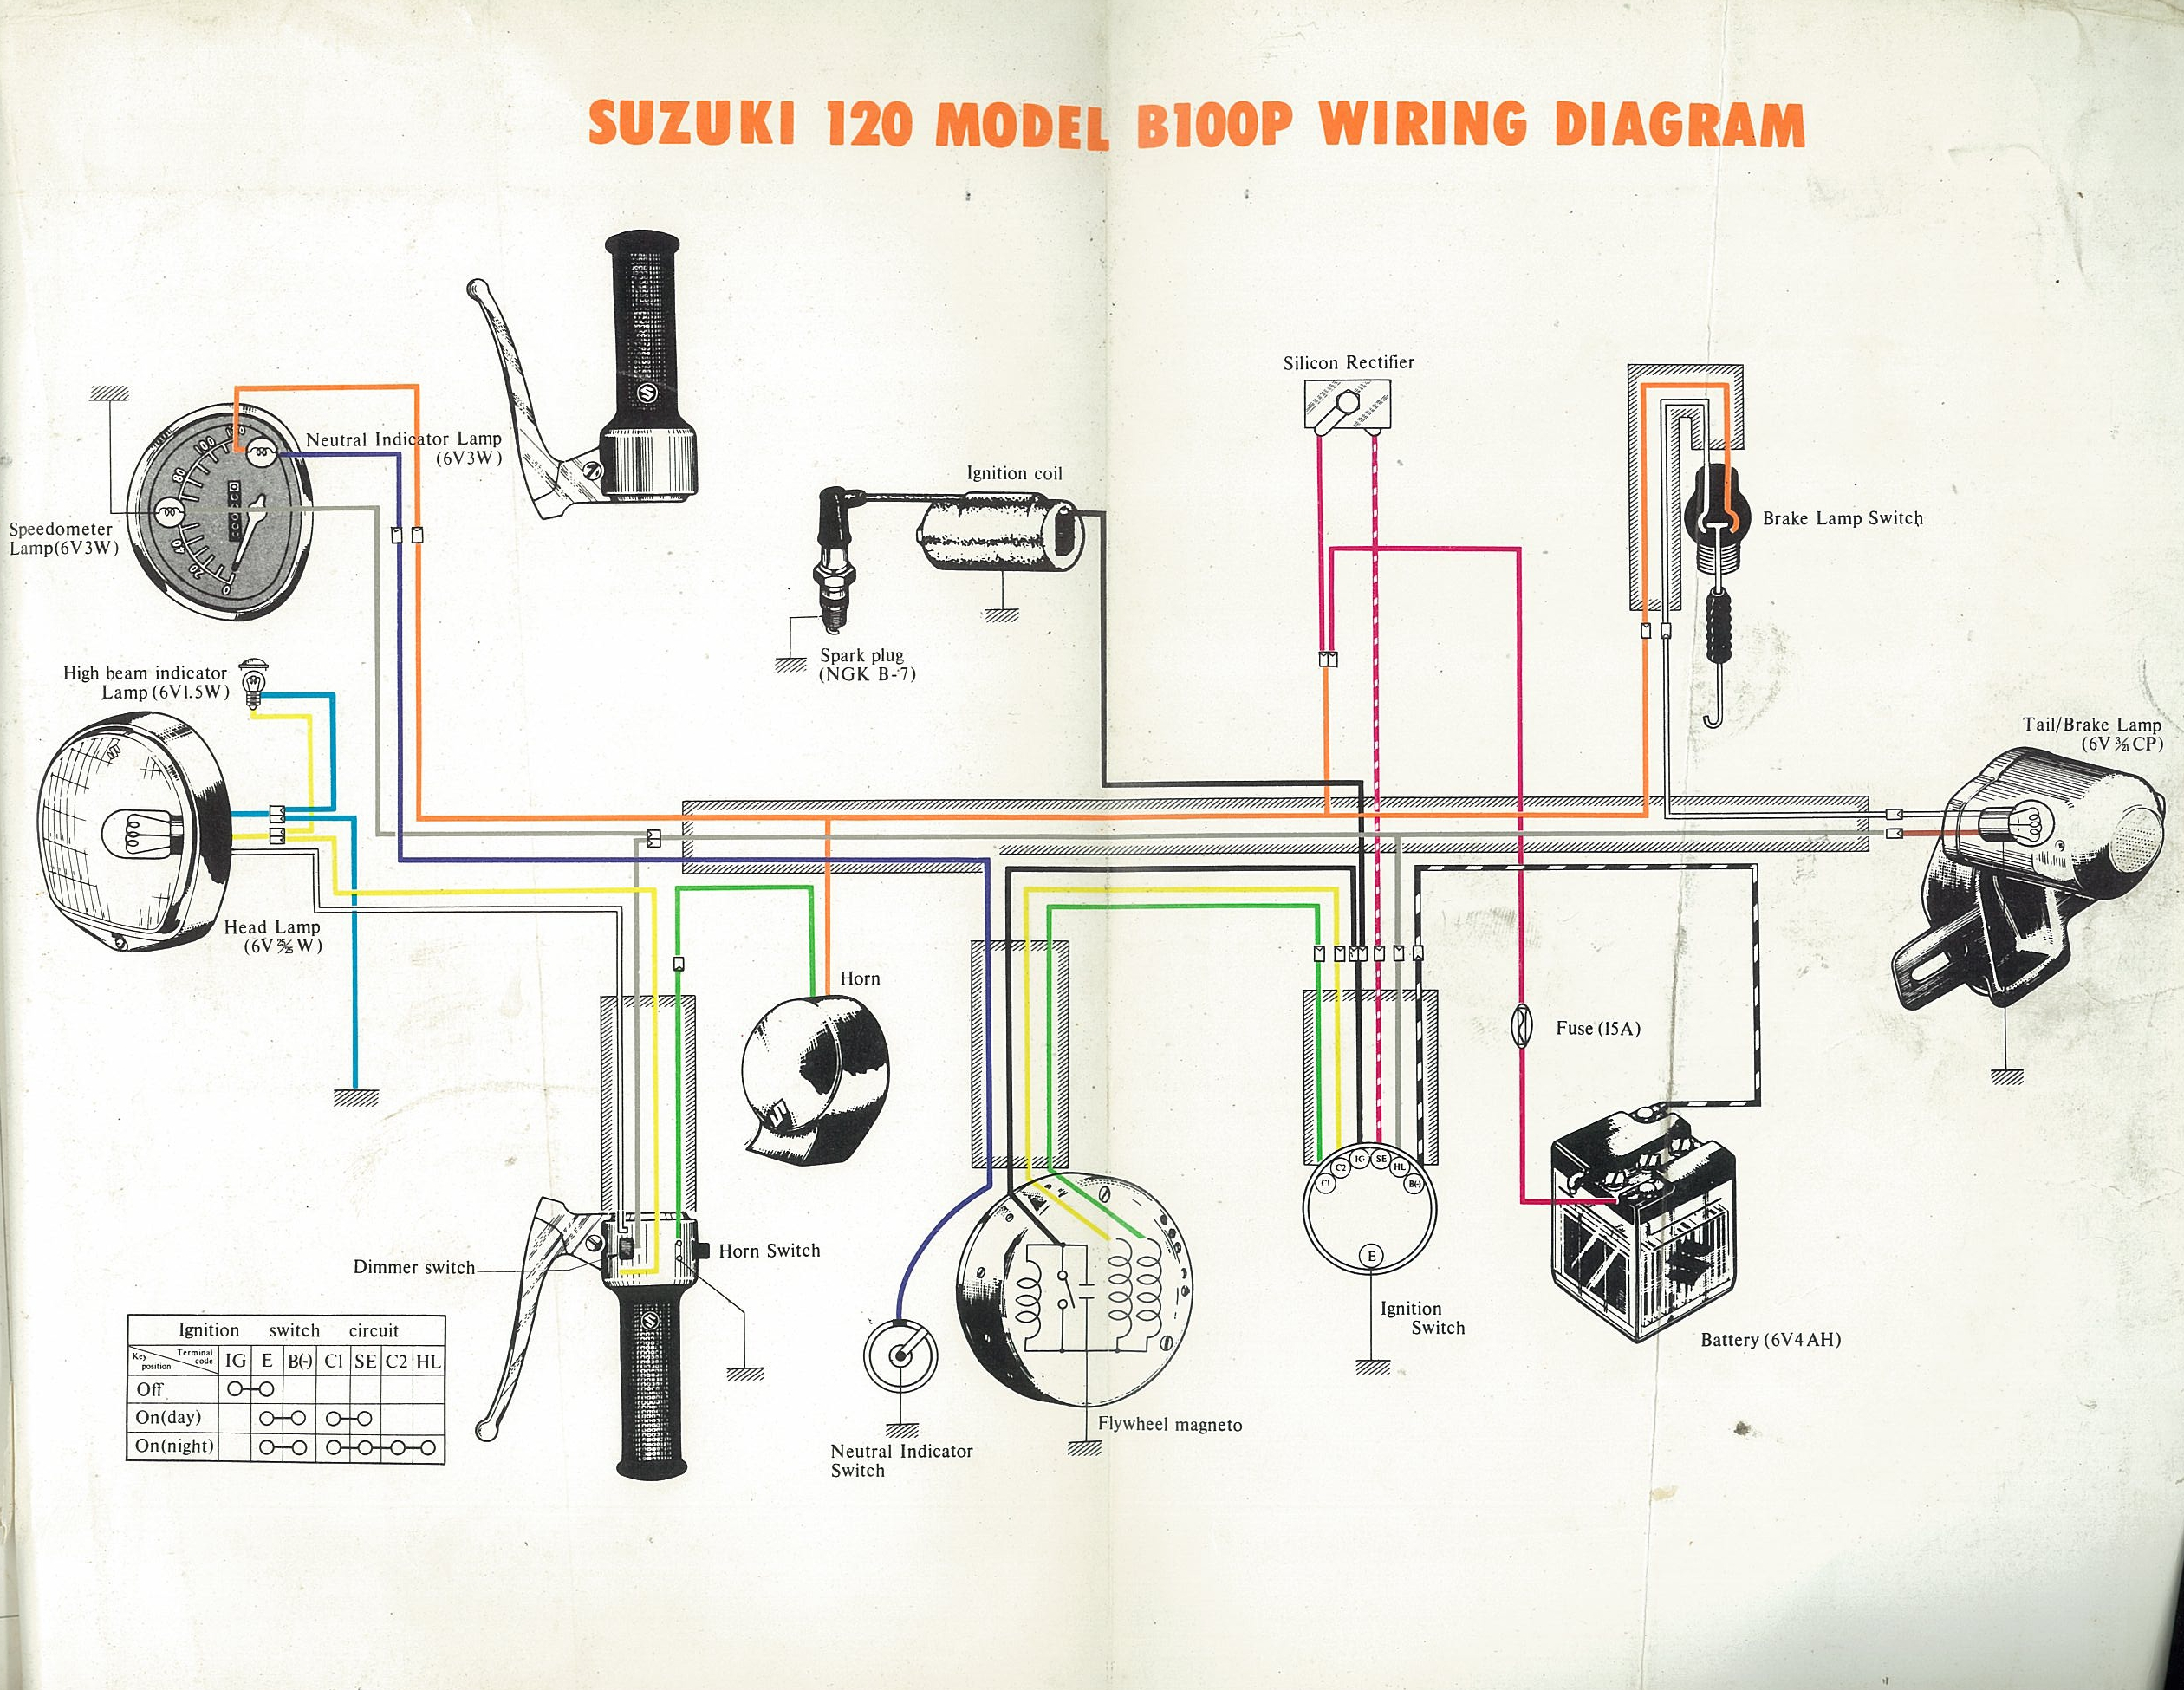 b100p wiring sundial moto sports \u2022 view topic bypassing the ignition key for suzuki rv90 wiring diagram at bayanpartner.co